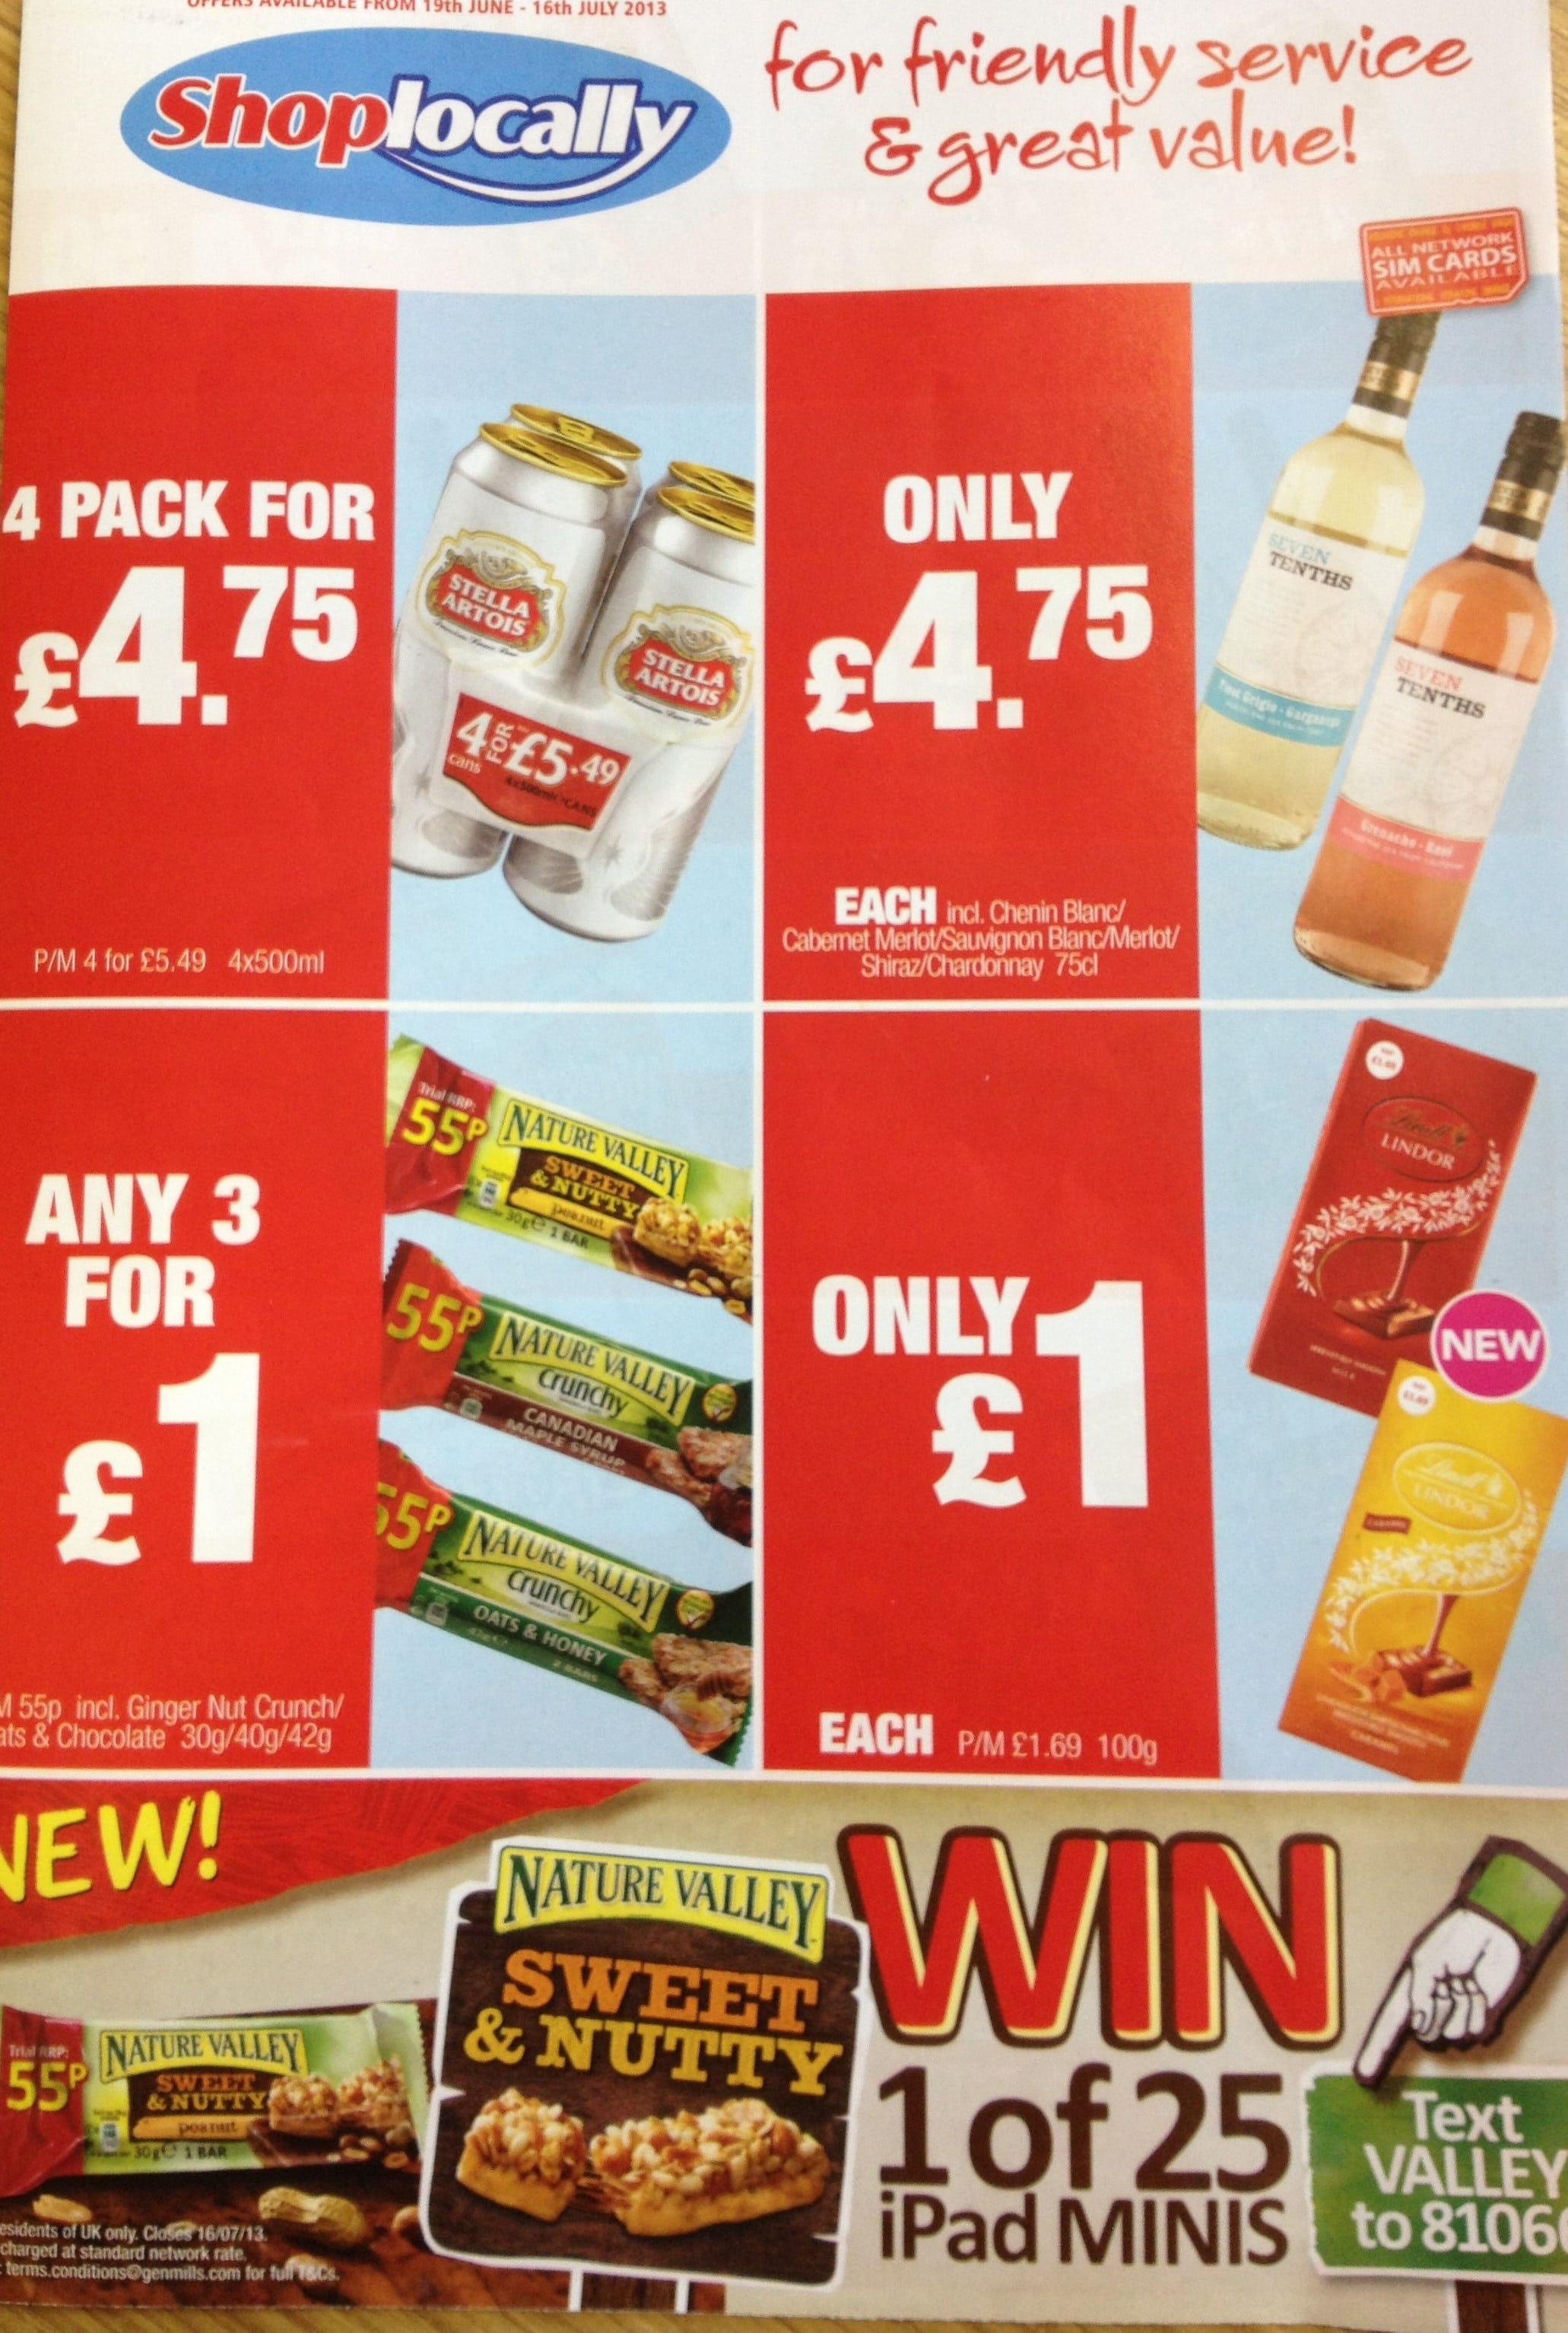 Offers 19th June – 16th July